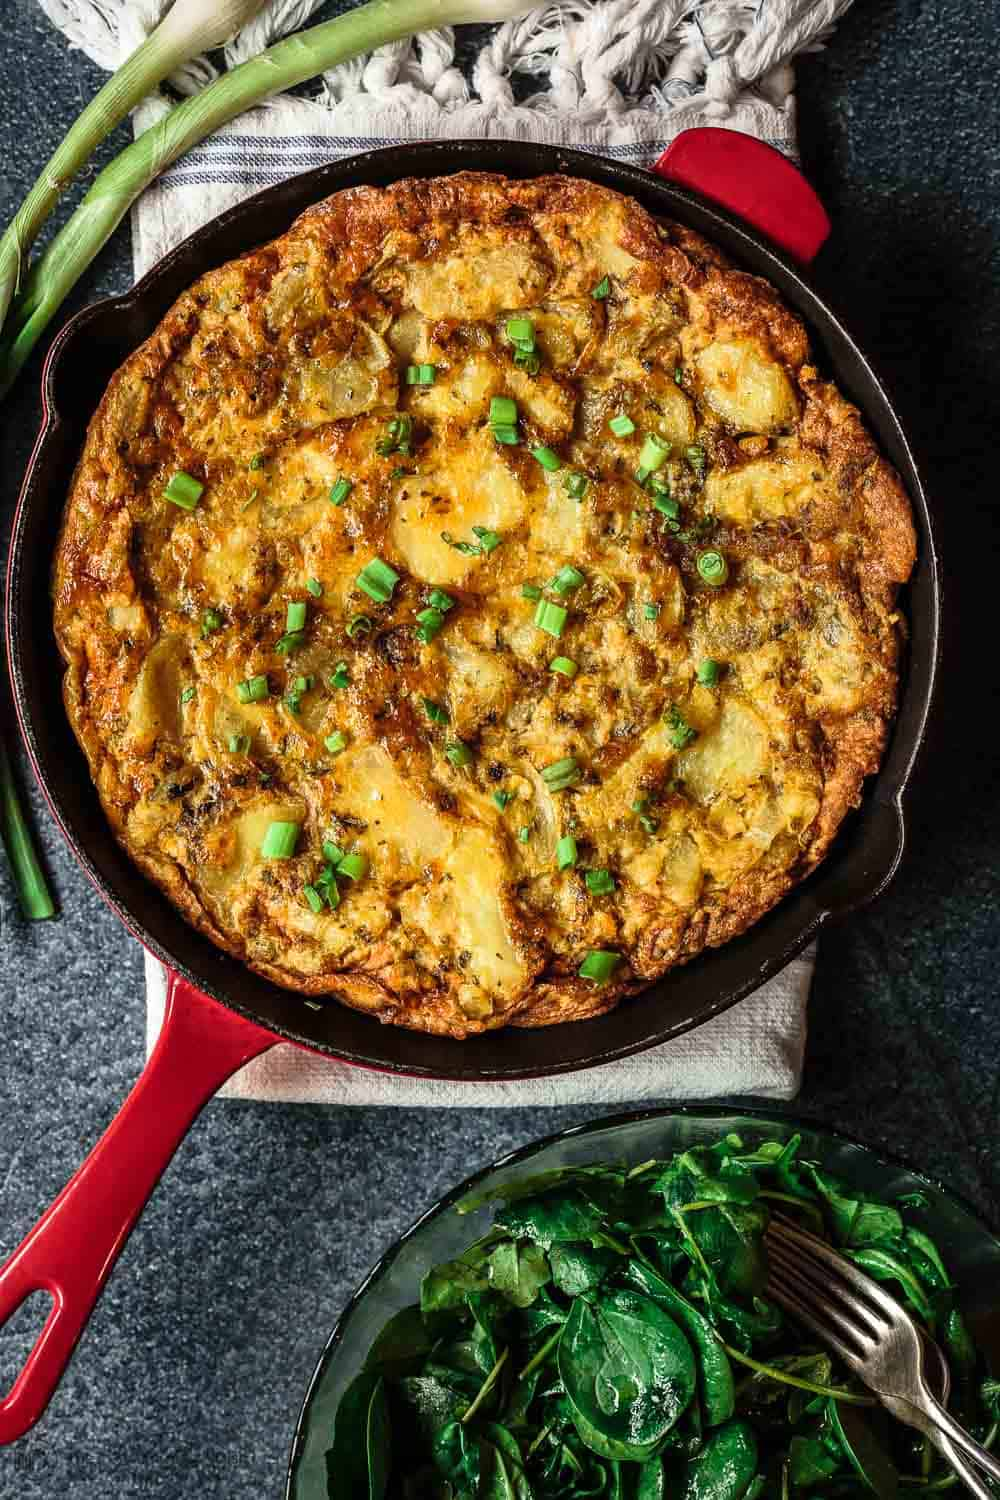 Spanish Tortilla in Skillet served with a Side of Arugula Salad and Spring onions for garnish